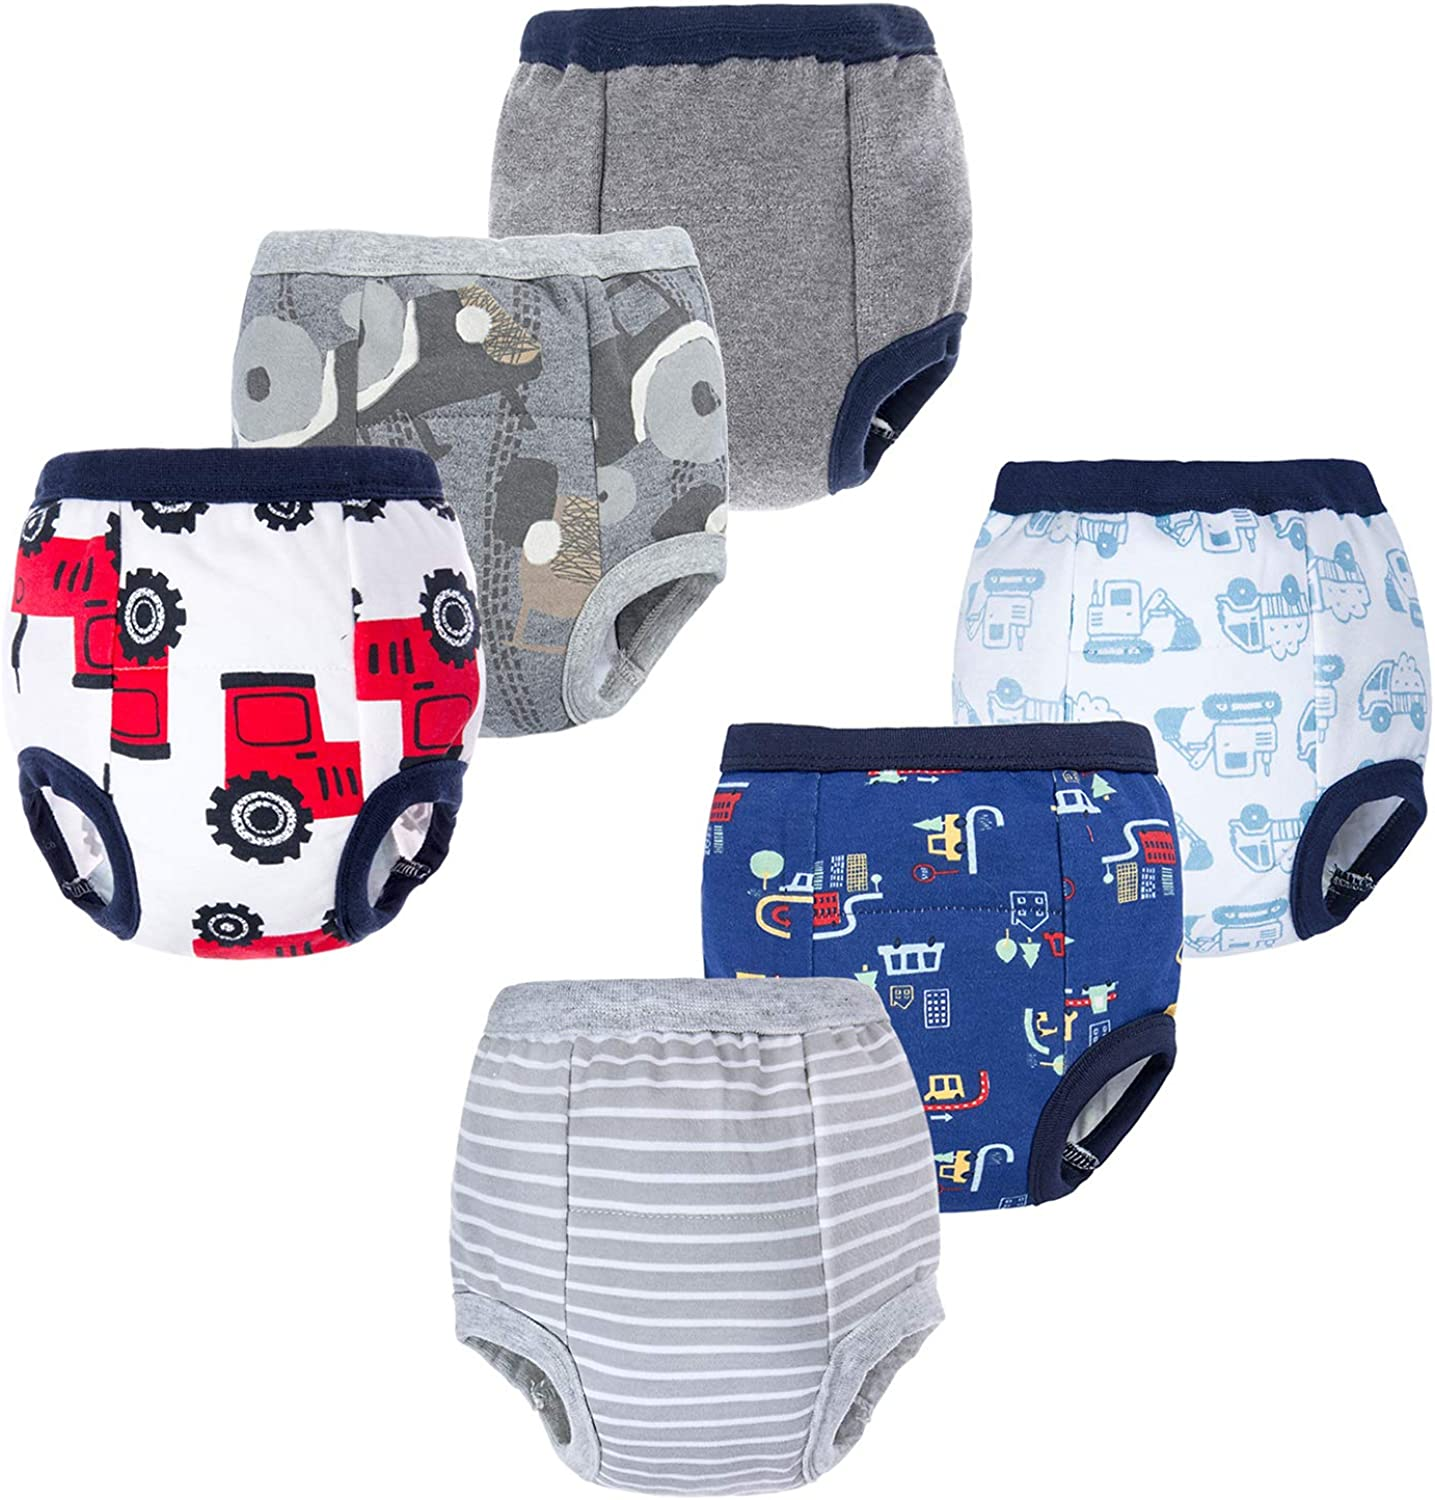 BIG ELEPHANT Baby Spring new work one after another Boys' 6 Pack Training Bombing new work Toddler Potty 100% Pants